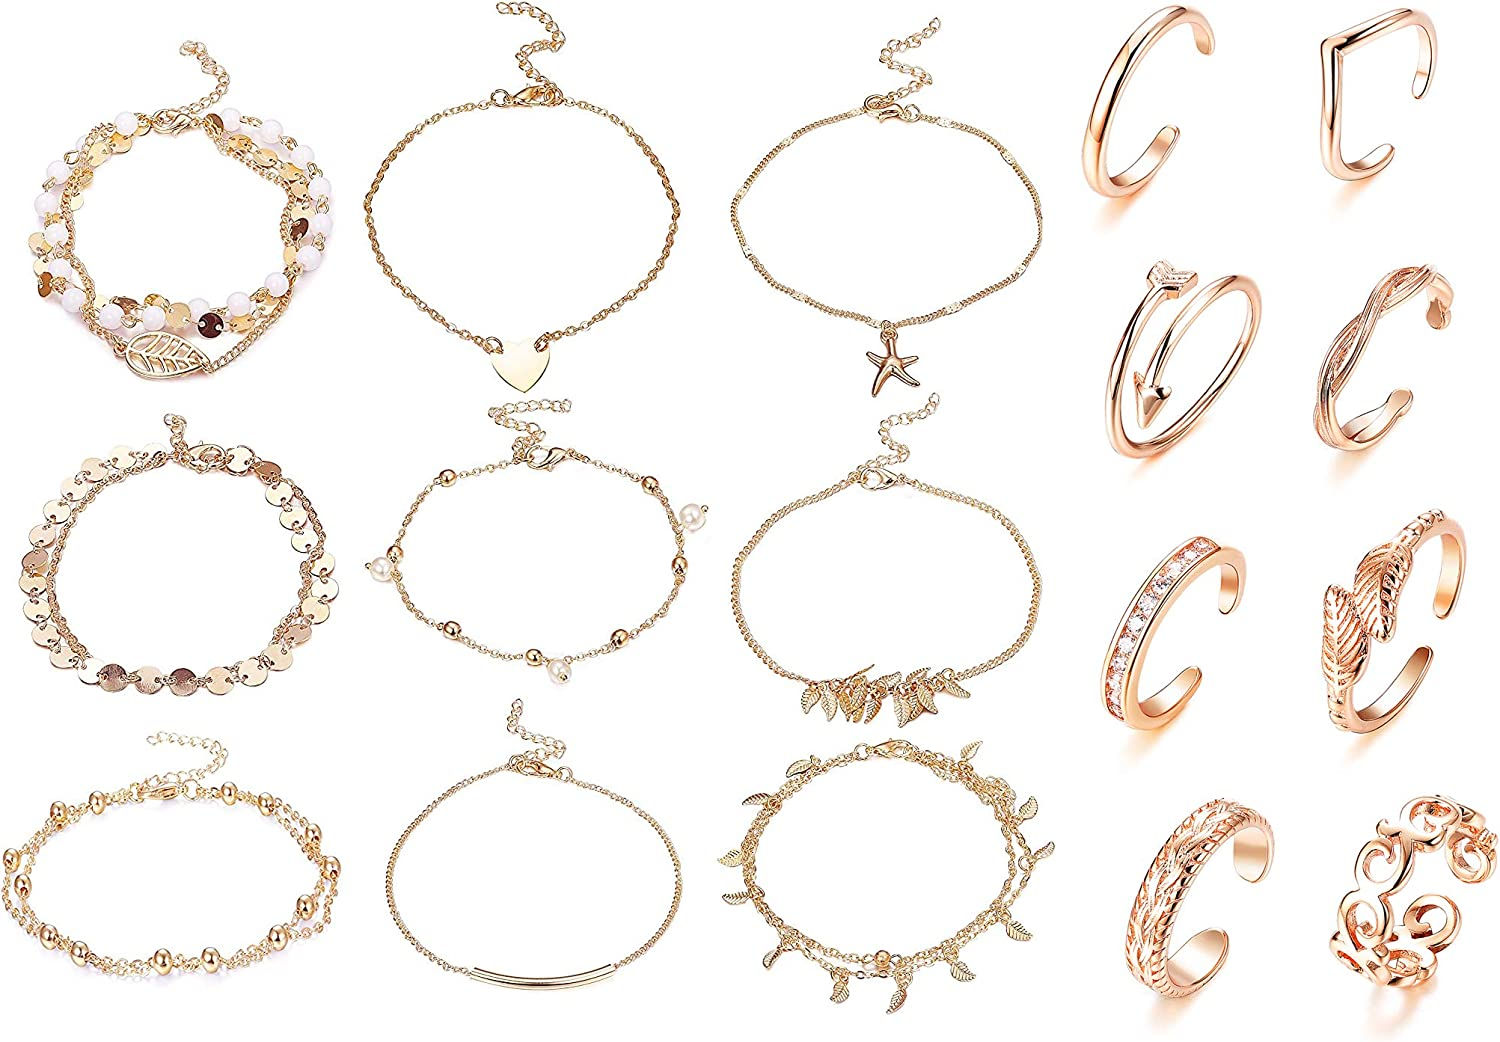 FINREZIO 17 Pcs Rose Gold Ankle Bracelet Toe Ring Set for Women Beach Chain Anklets Open Tail Band Rings Foot Jewelry Set